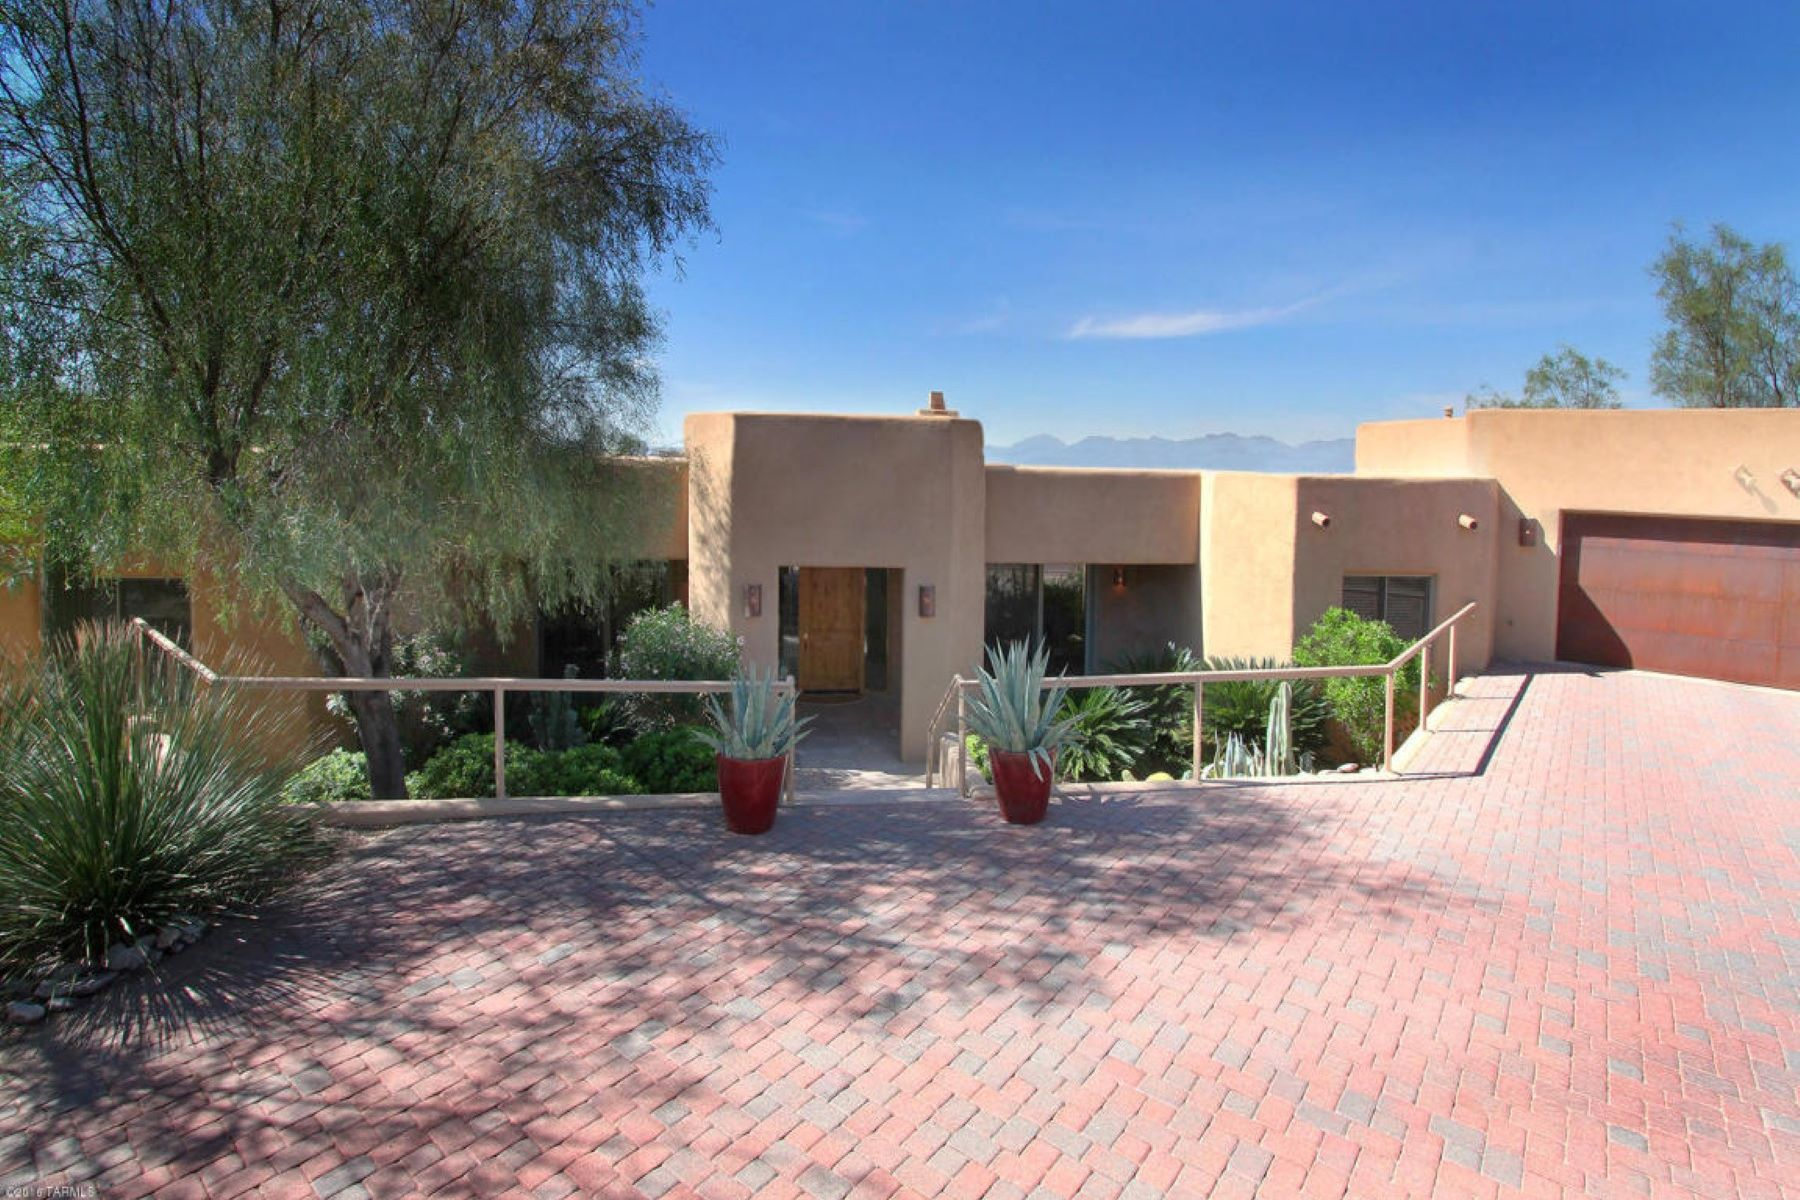 Maison unifamiliale pour l Vente à Fully furnished contemporary home 1608 E Desert Garden Drive Tucson, Arizona, 85718 États-Unis